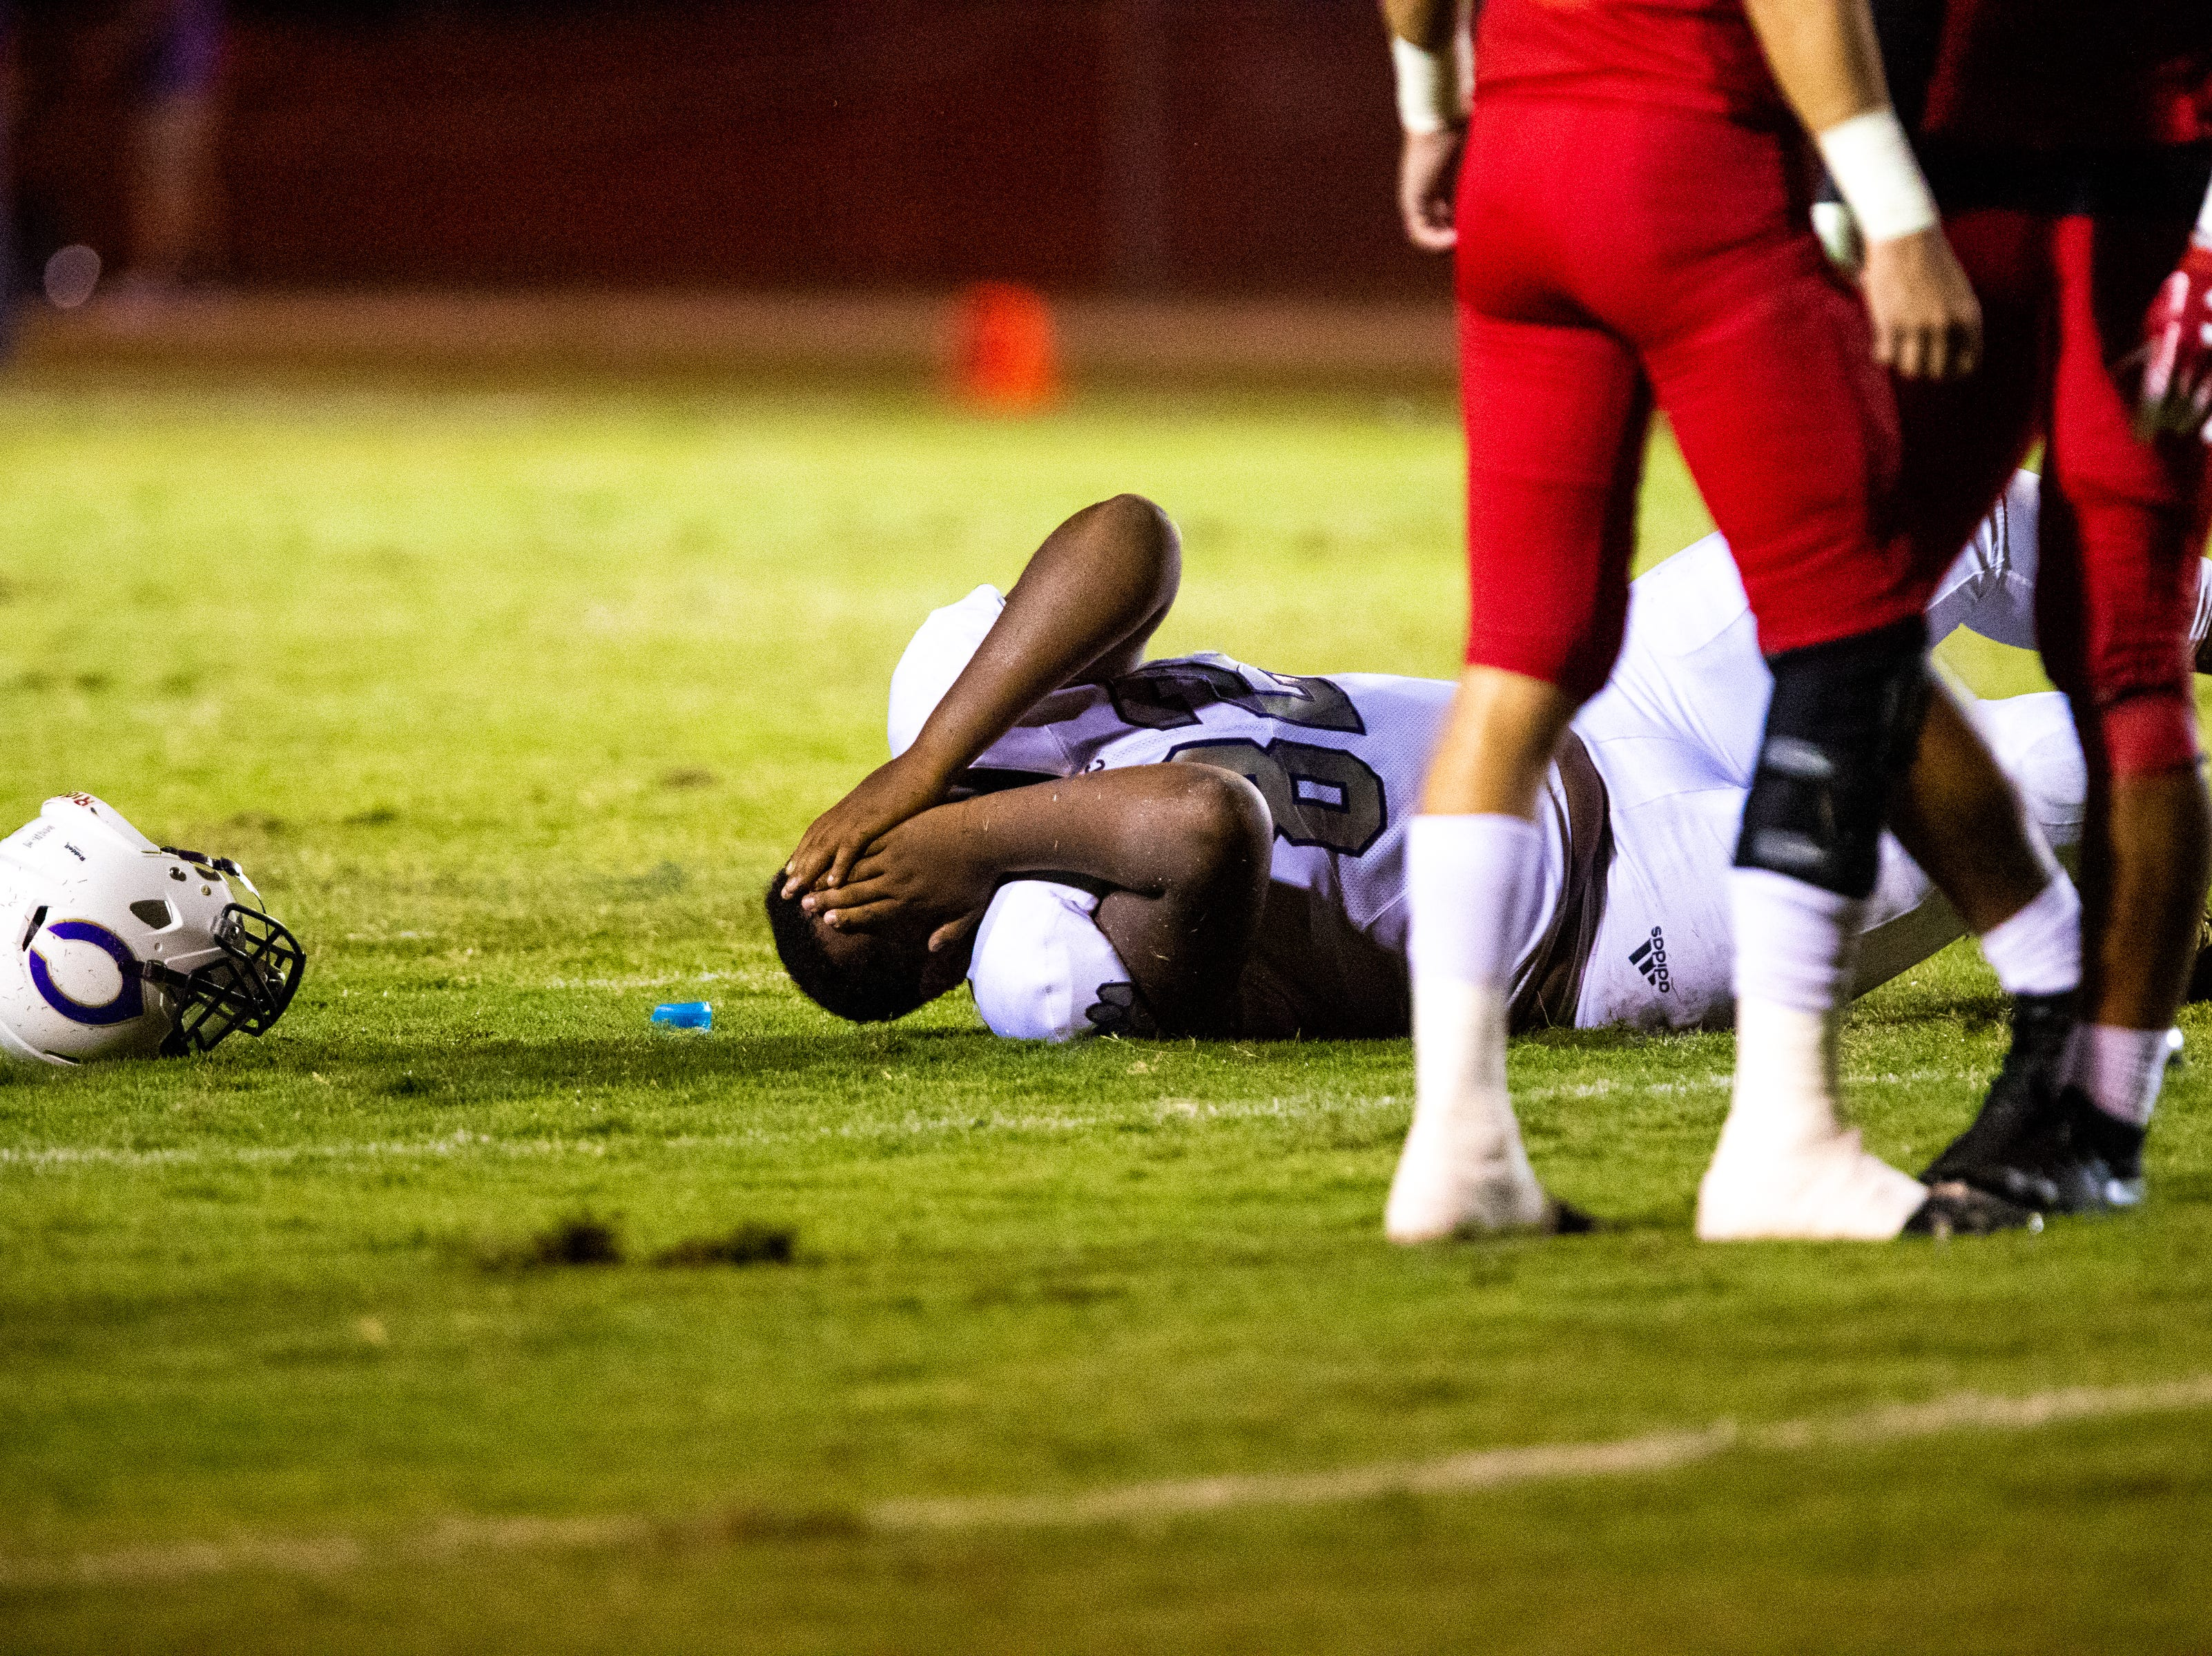 Khalil Smith (82) of Clarksville High covers his face after hurting his ankle during the second half at Henry County Friday, Sept. 14, 2018, in Paris, Tenn.